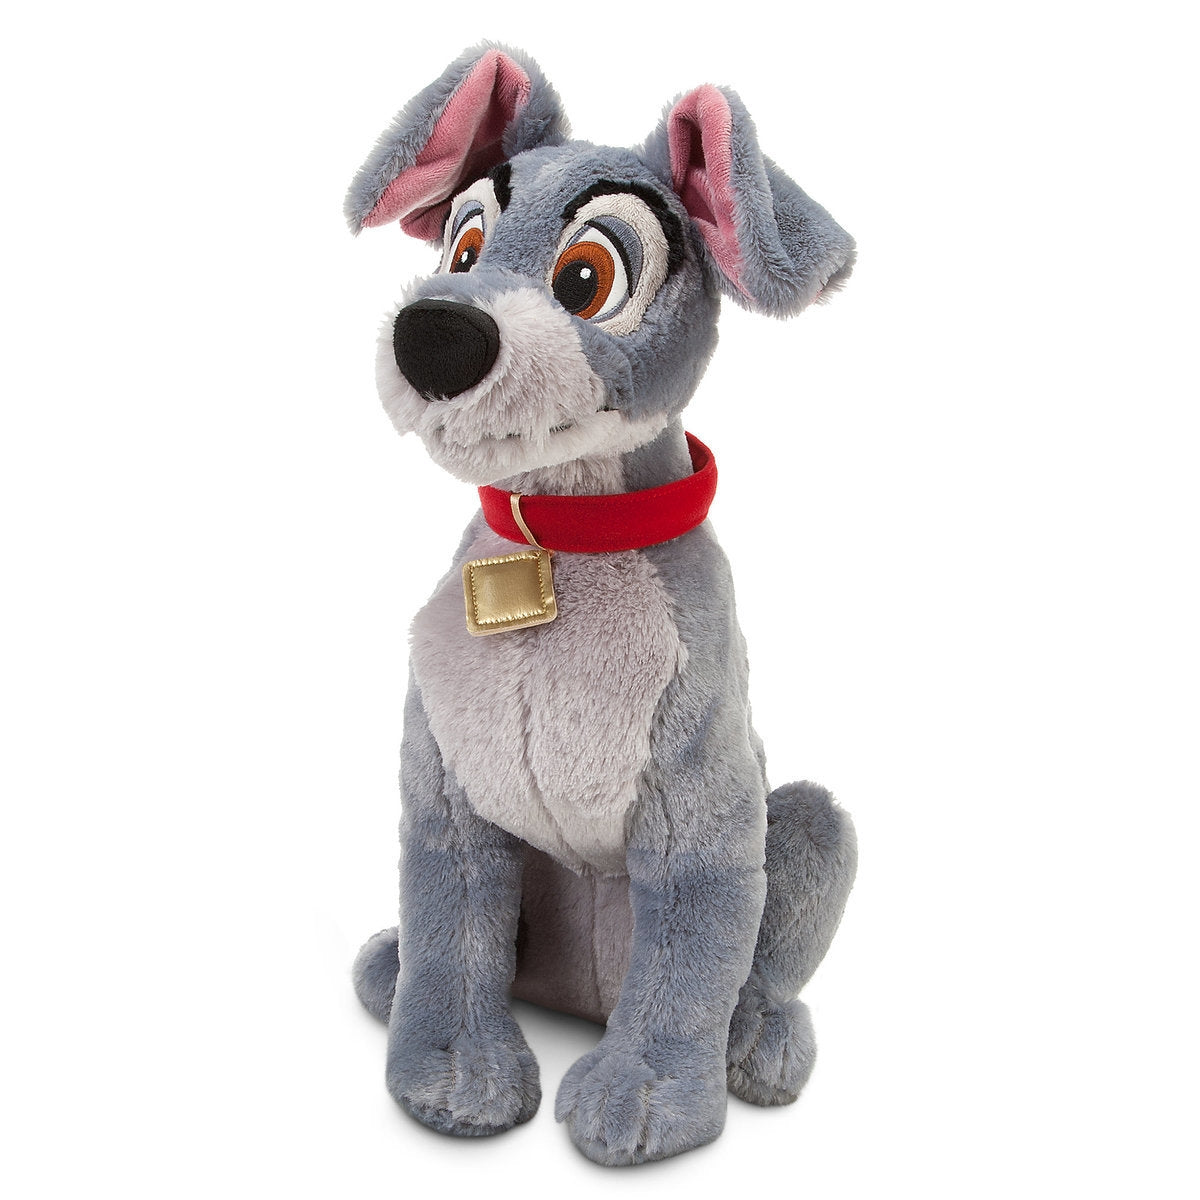 Tramp Plush - Lady and the Tramp - Medium - 16 inch